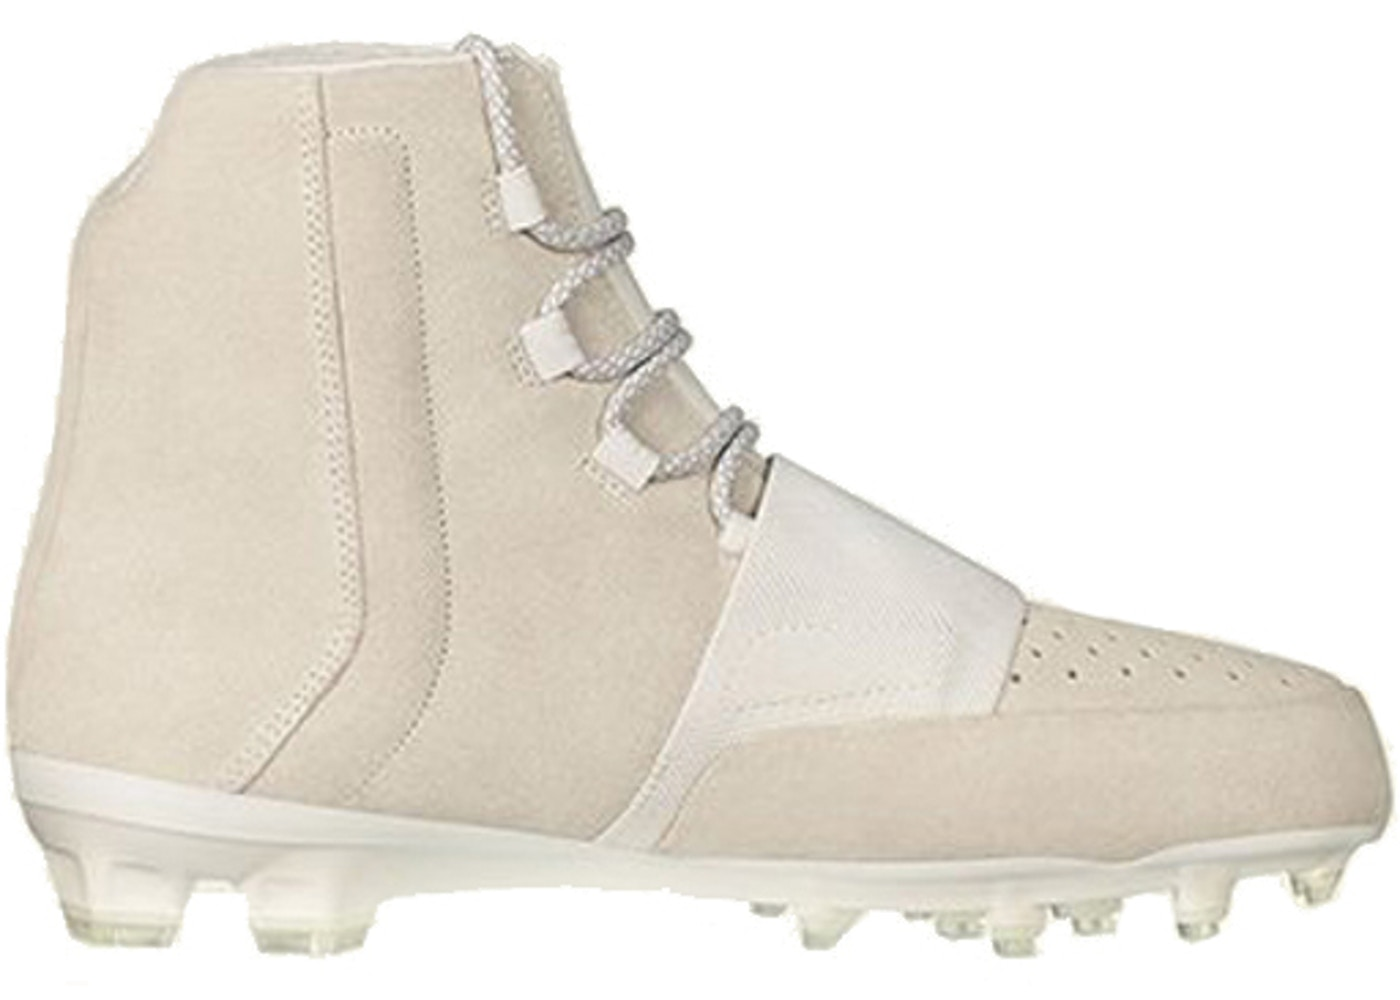 dividir Espacioso caligrafía  adidas Yeezy 750 Cleat Tan - Sneakers